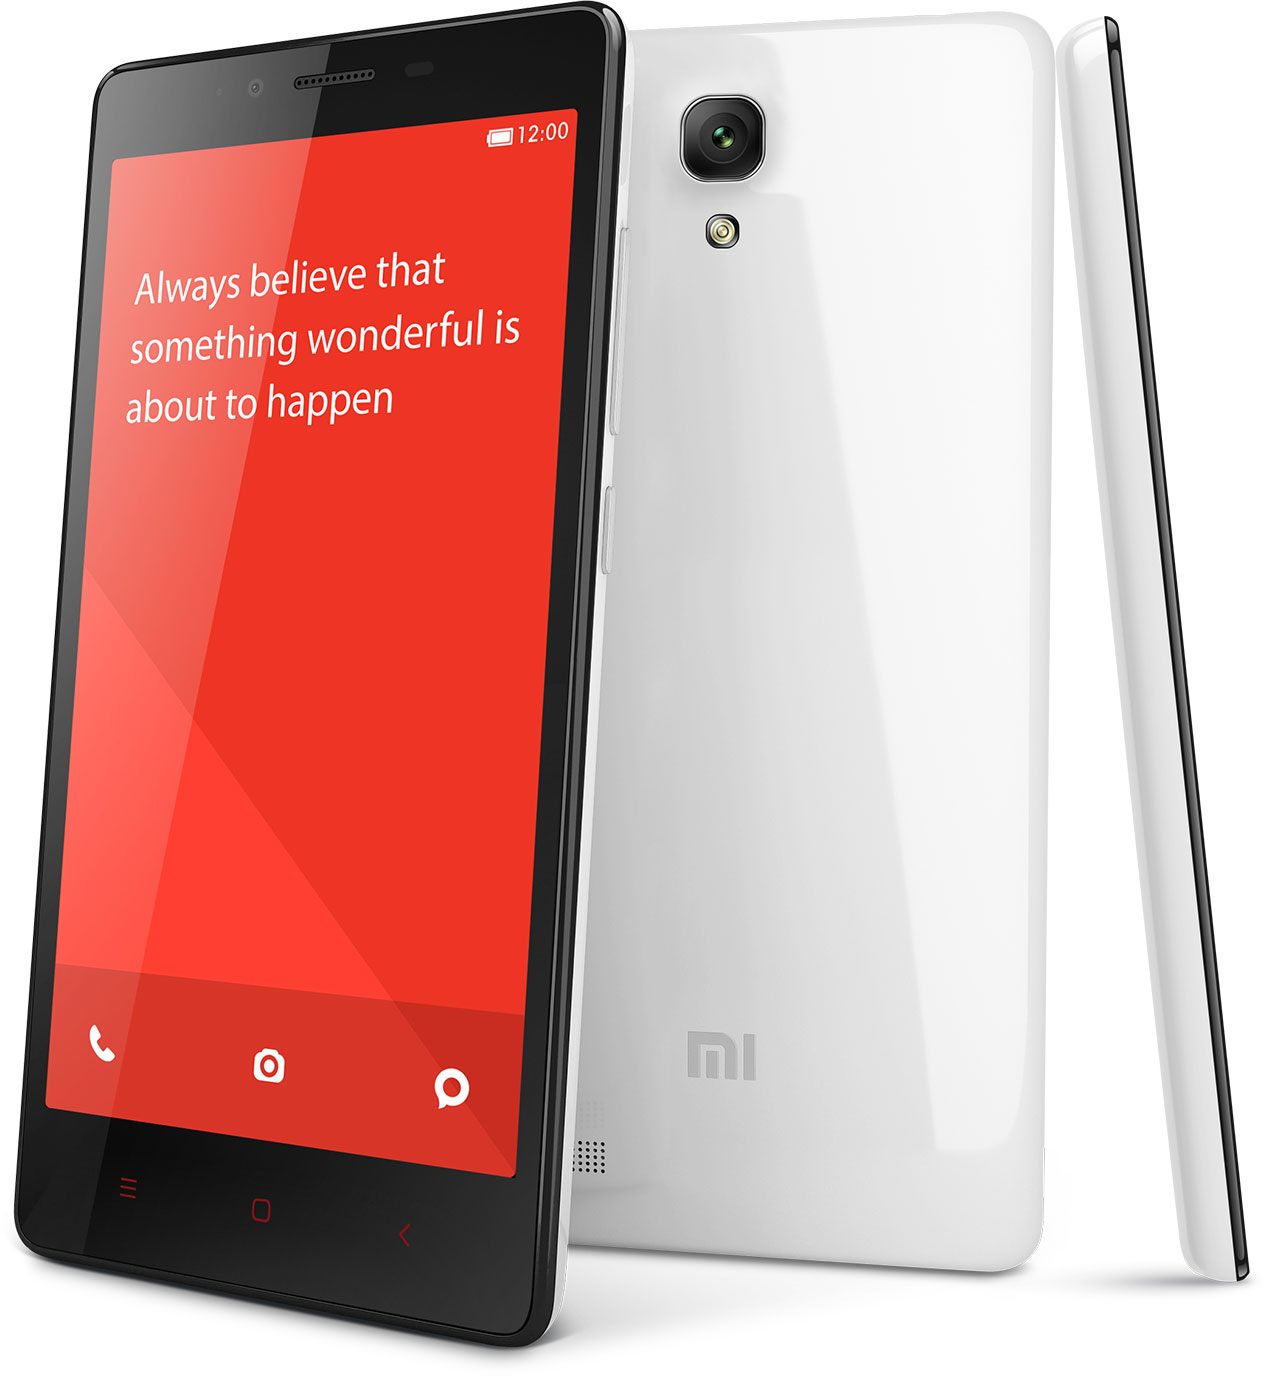 Ultra Cheap Xiaomi Redmi Note Prime Debuts